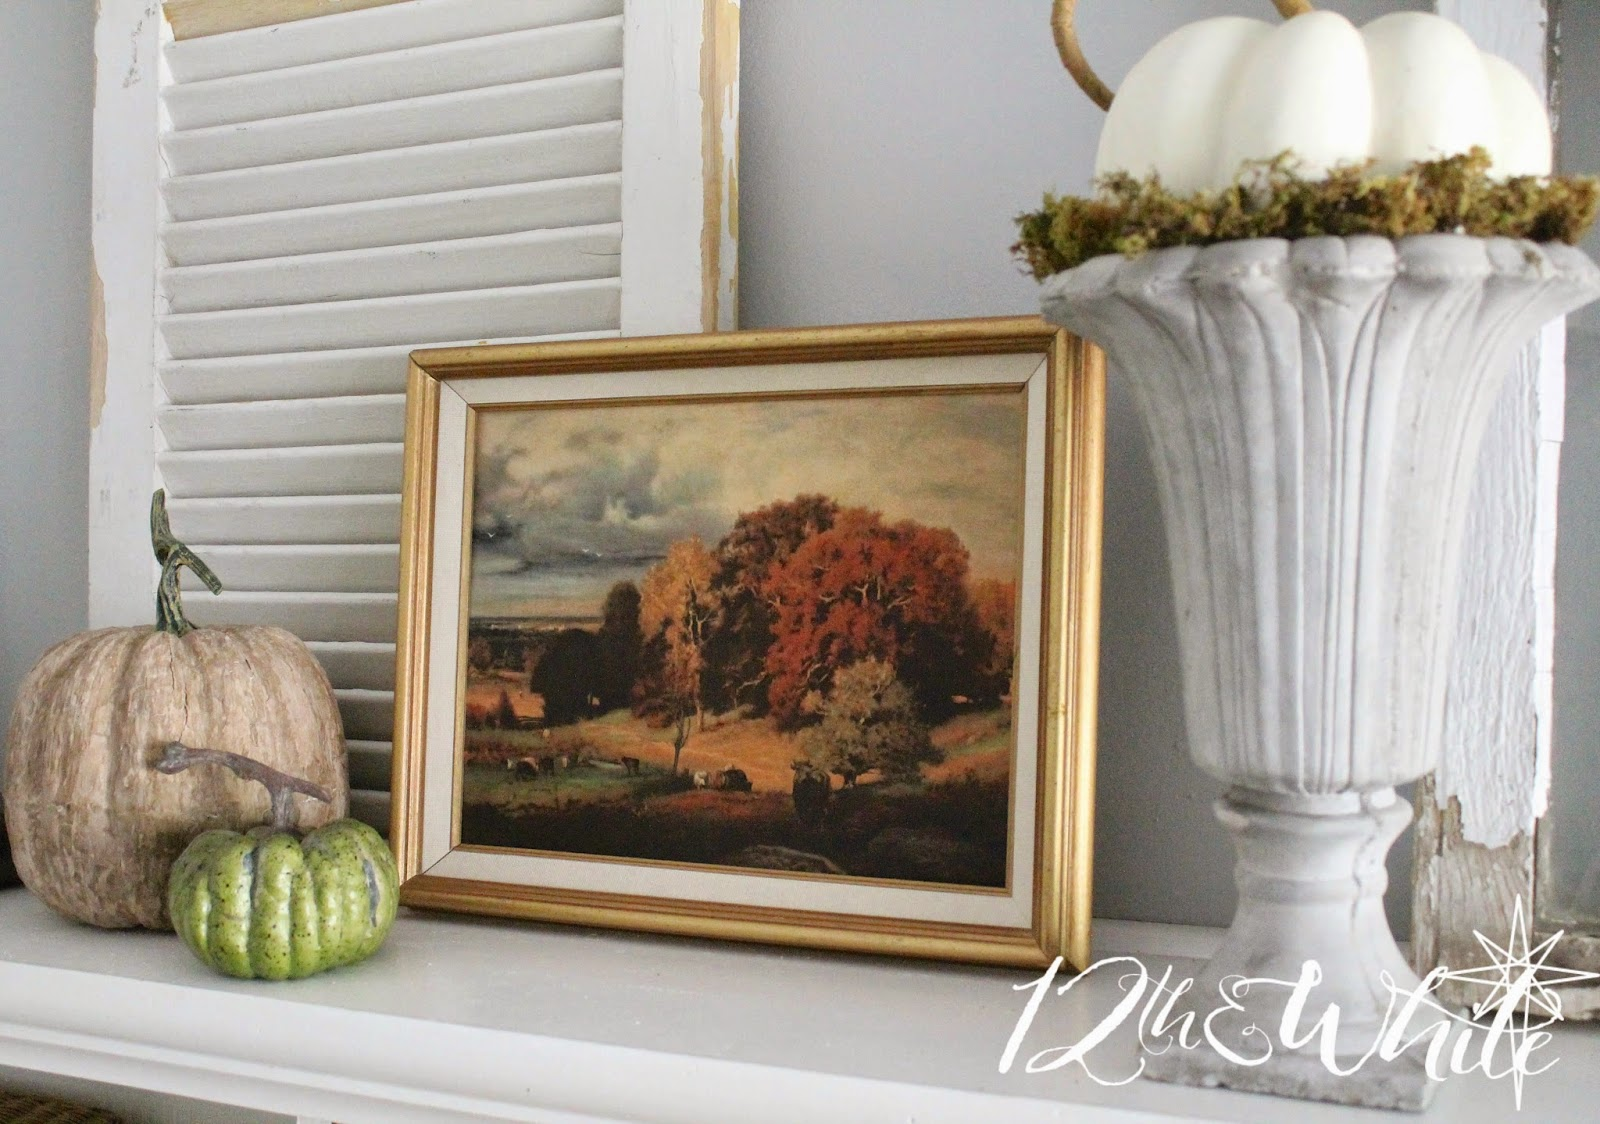 12th and White: Our Fall Hearth Room